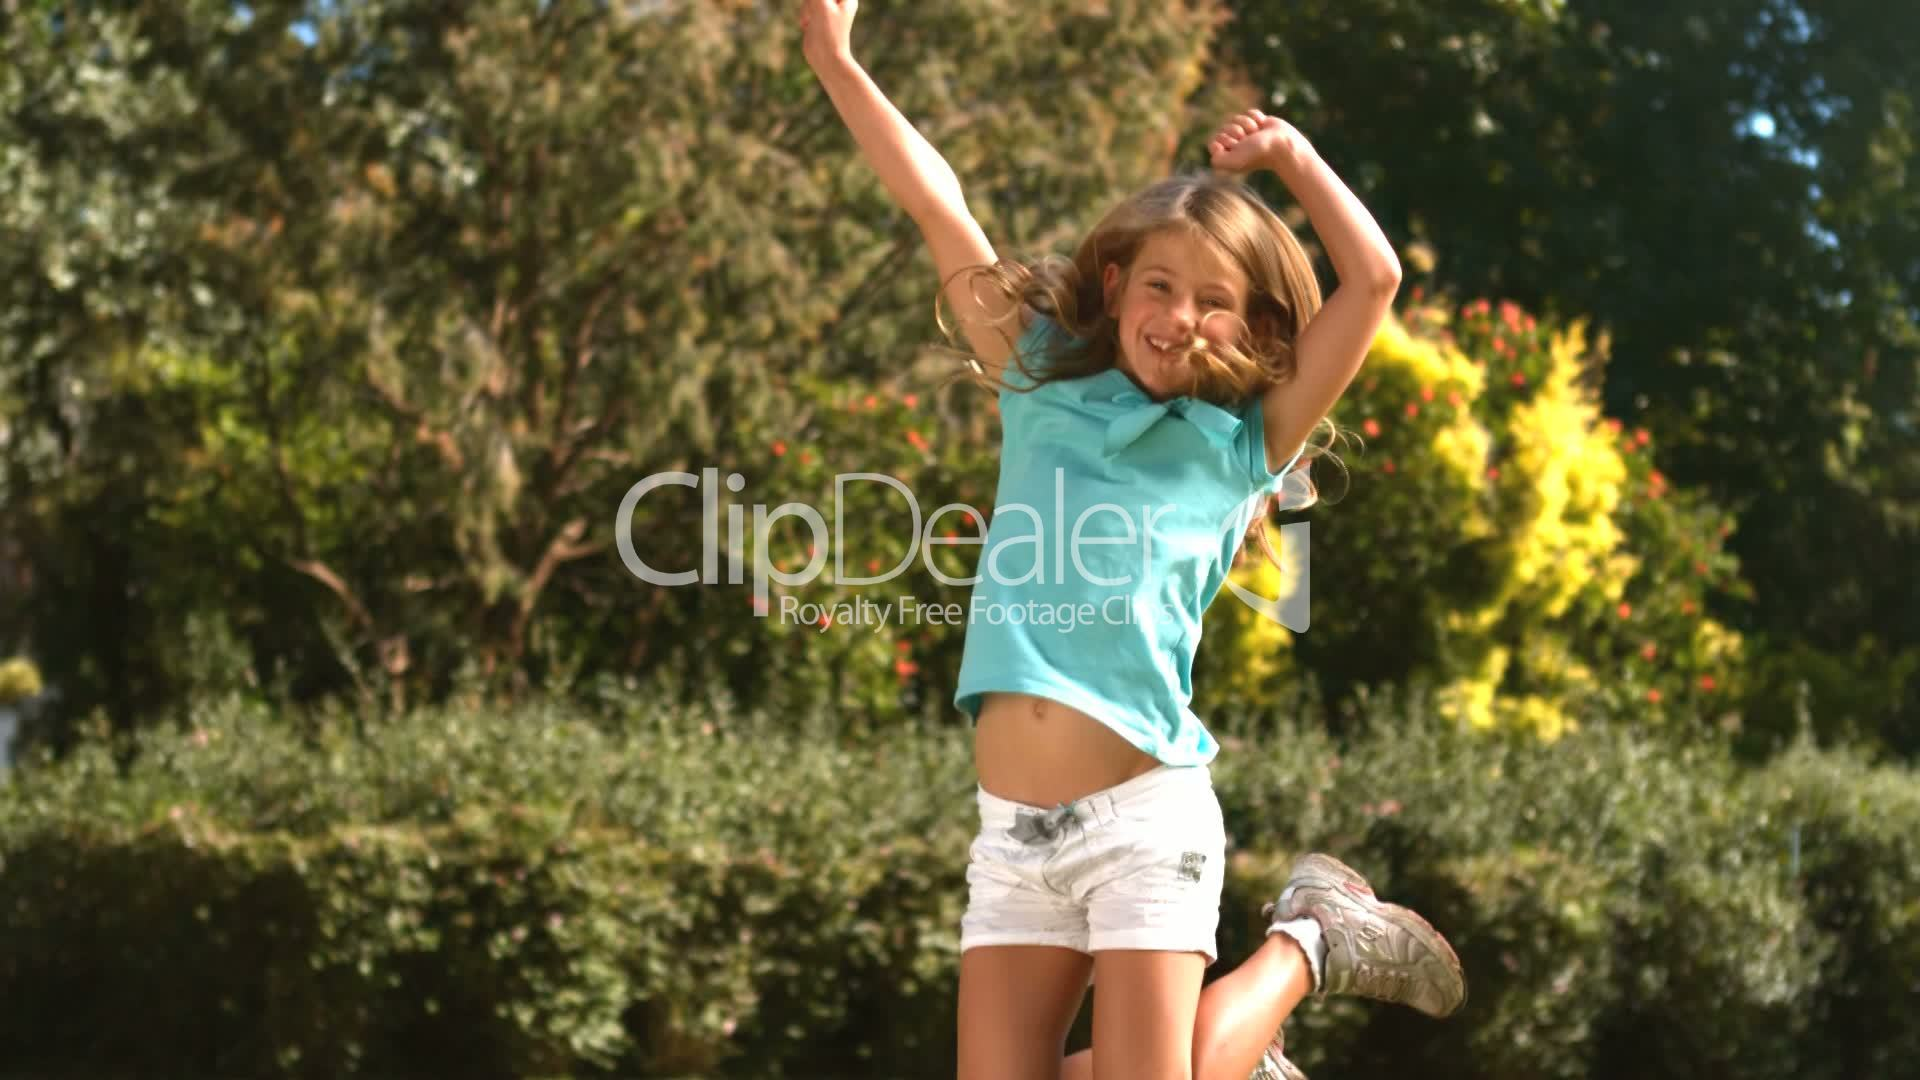 Cute little girl jumping in her garden: Royalty-free video and stock ...